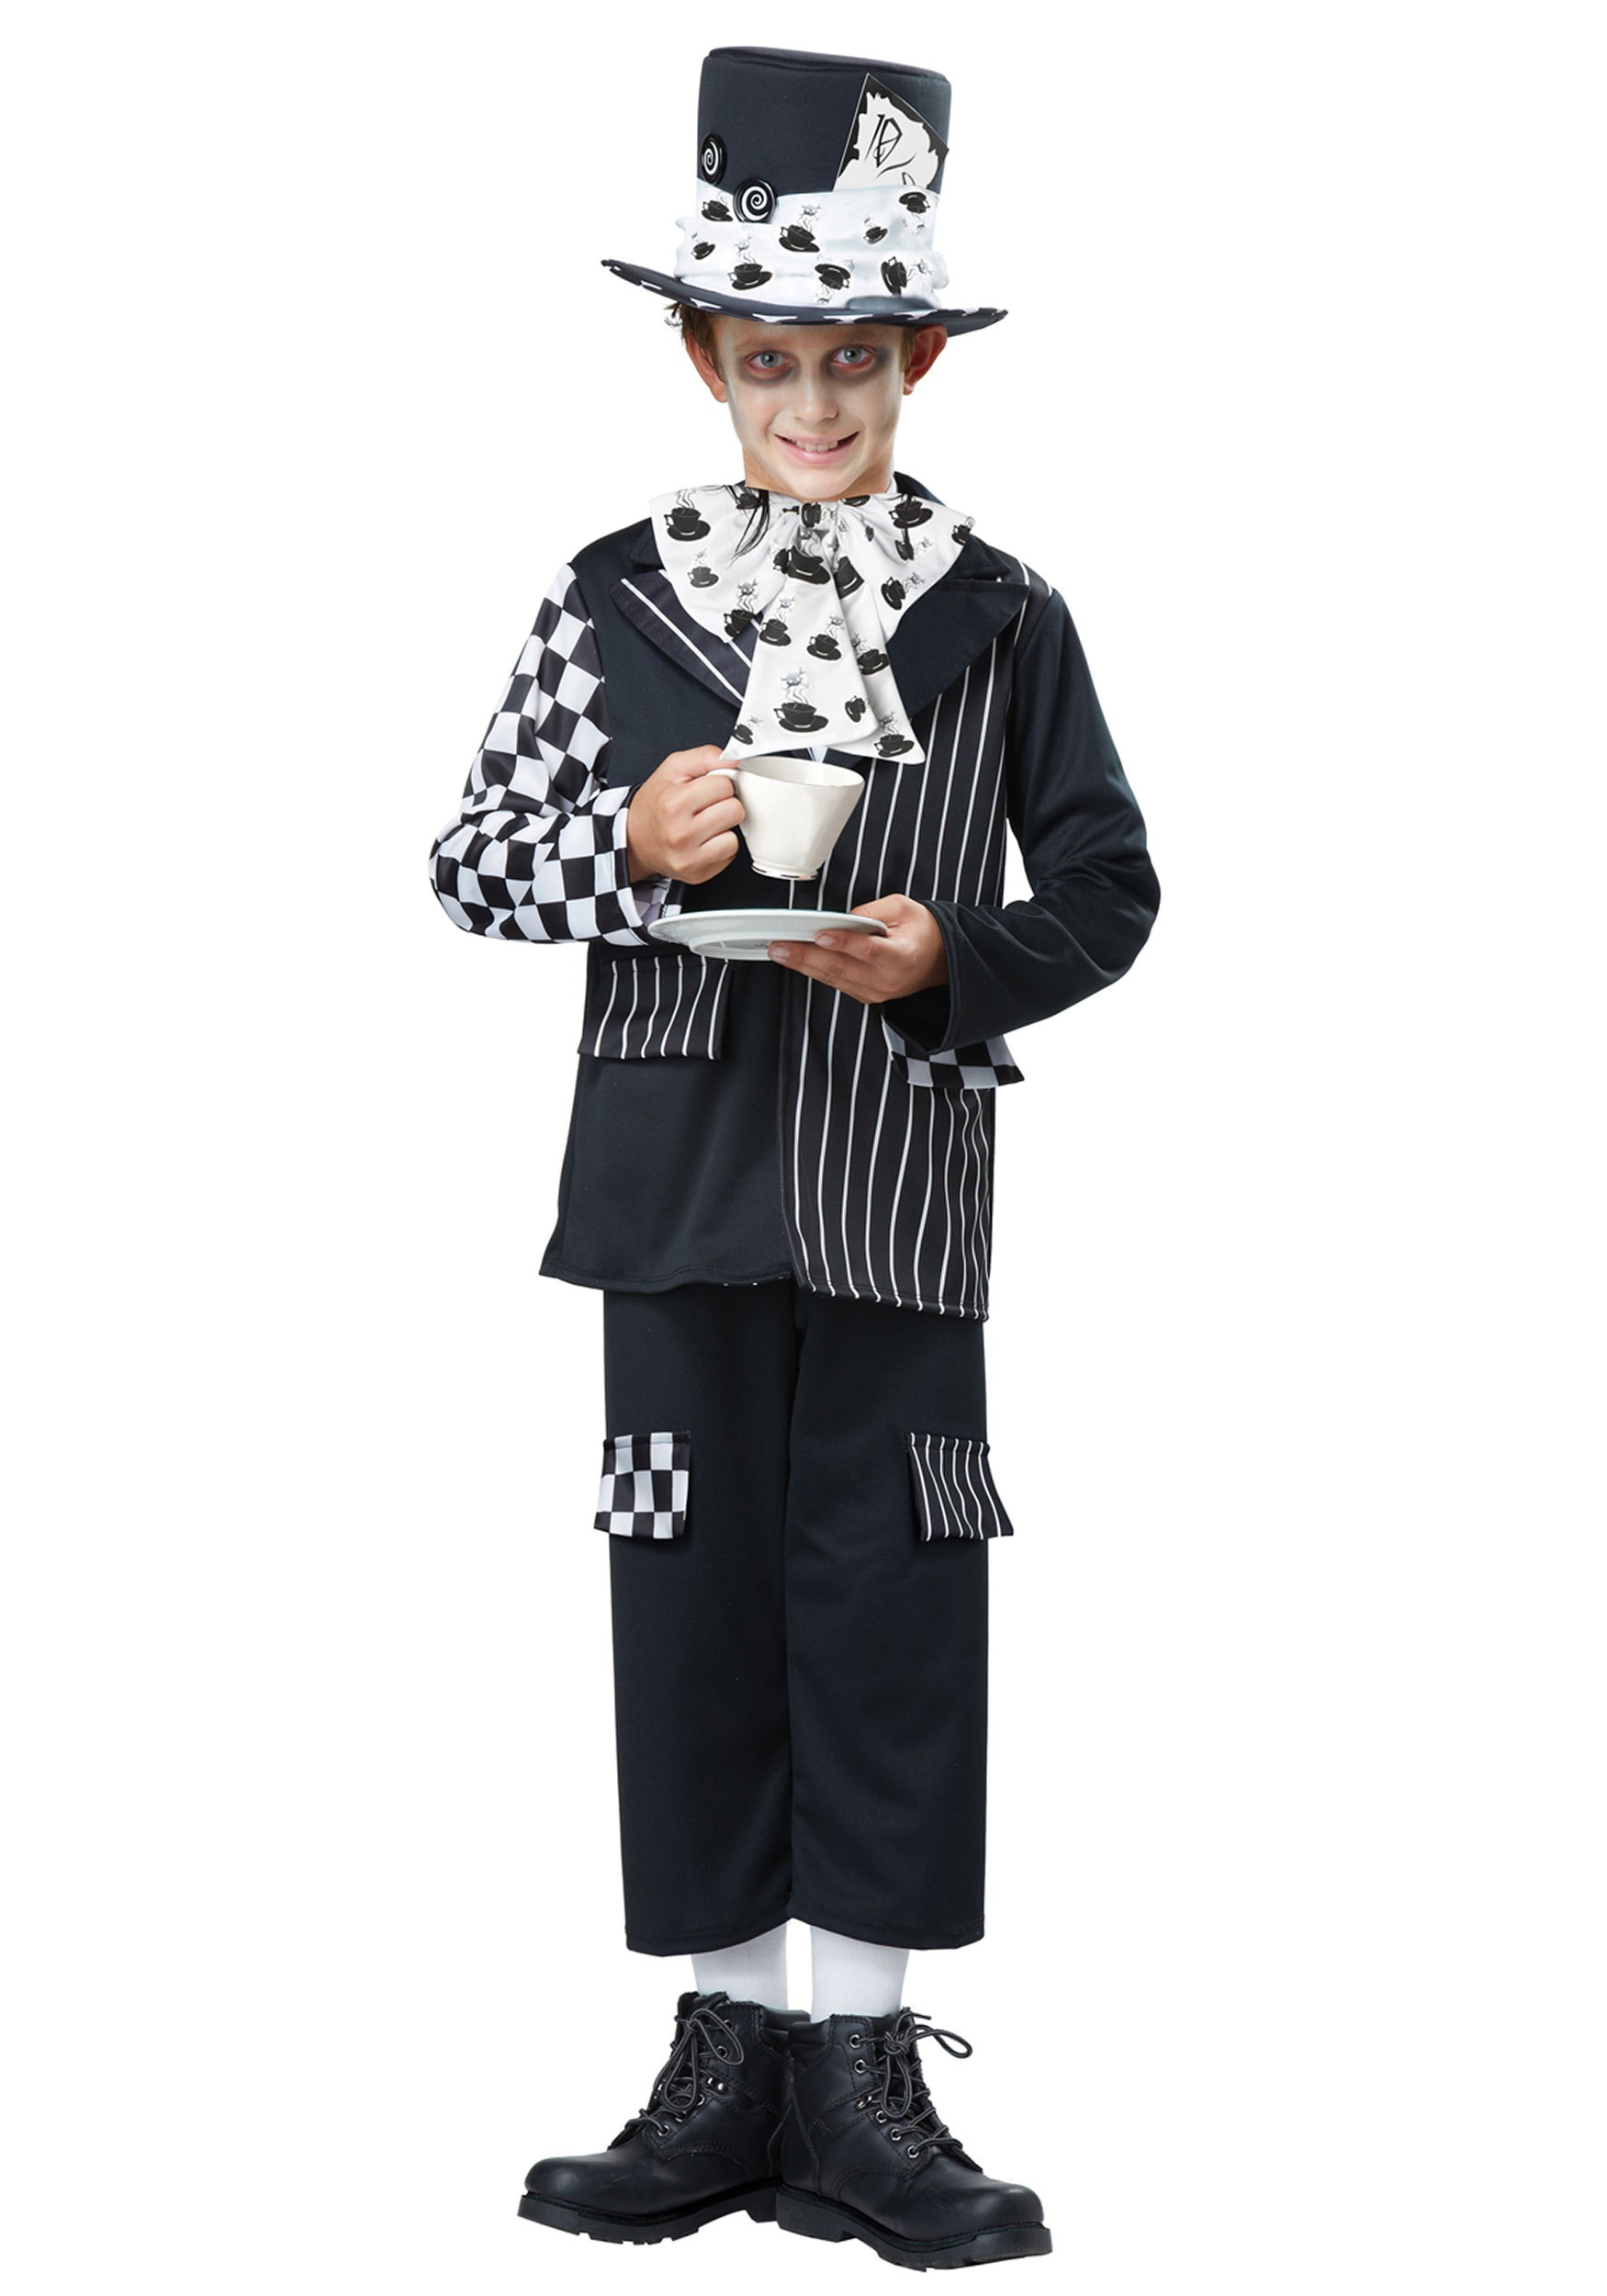 sc 1 st  Halloween Costumes : child mad hatter costume  - Germanpascual.Com